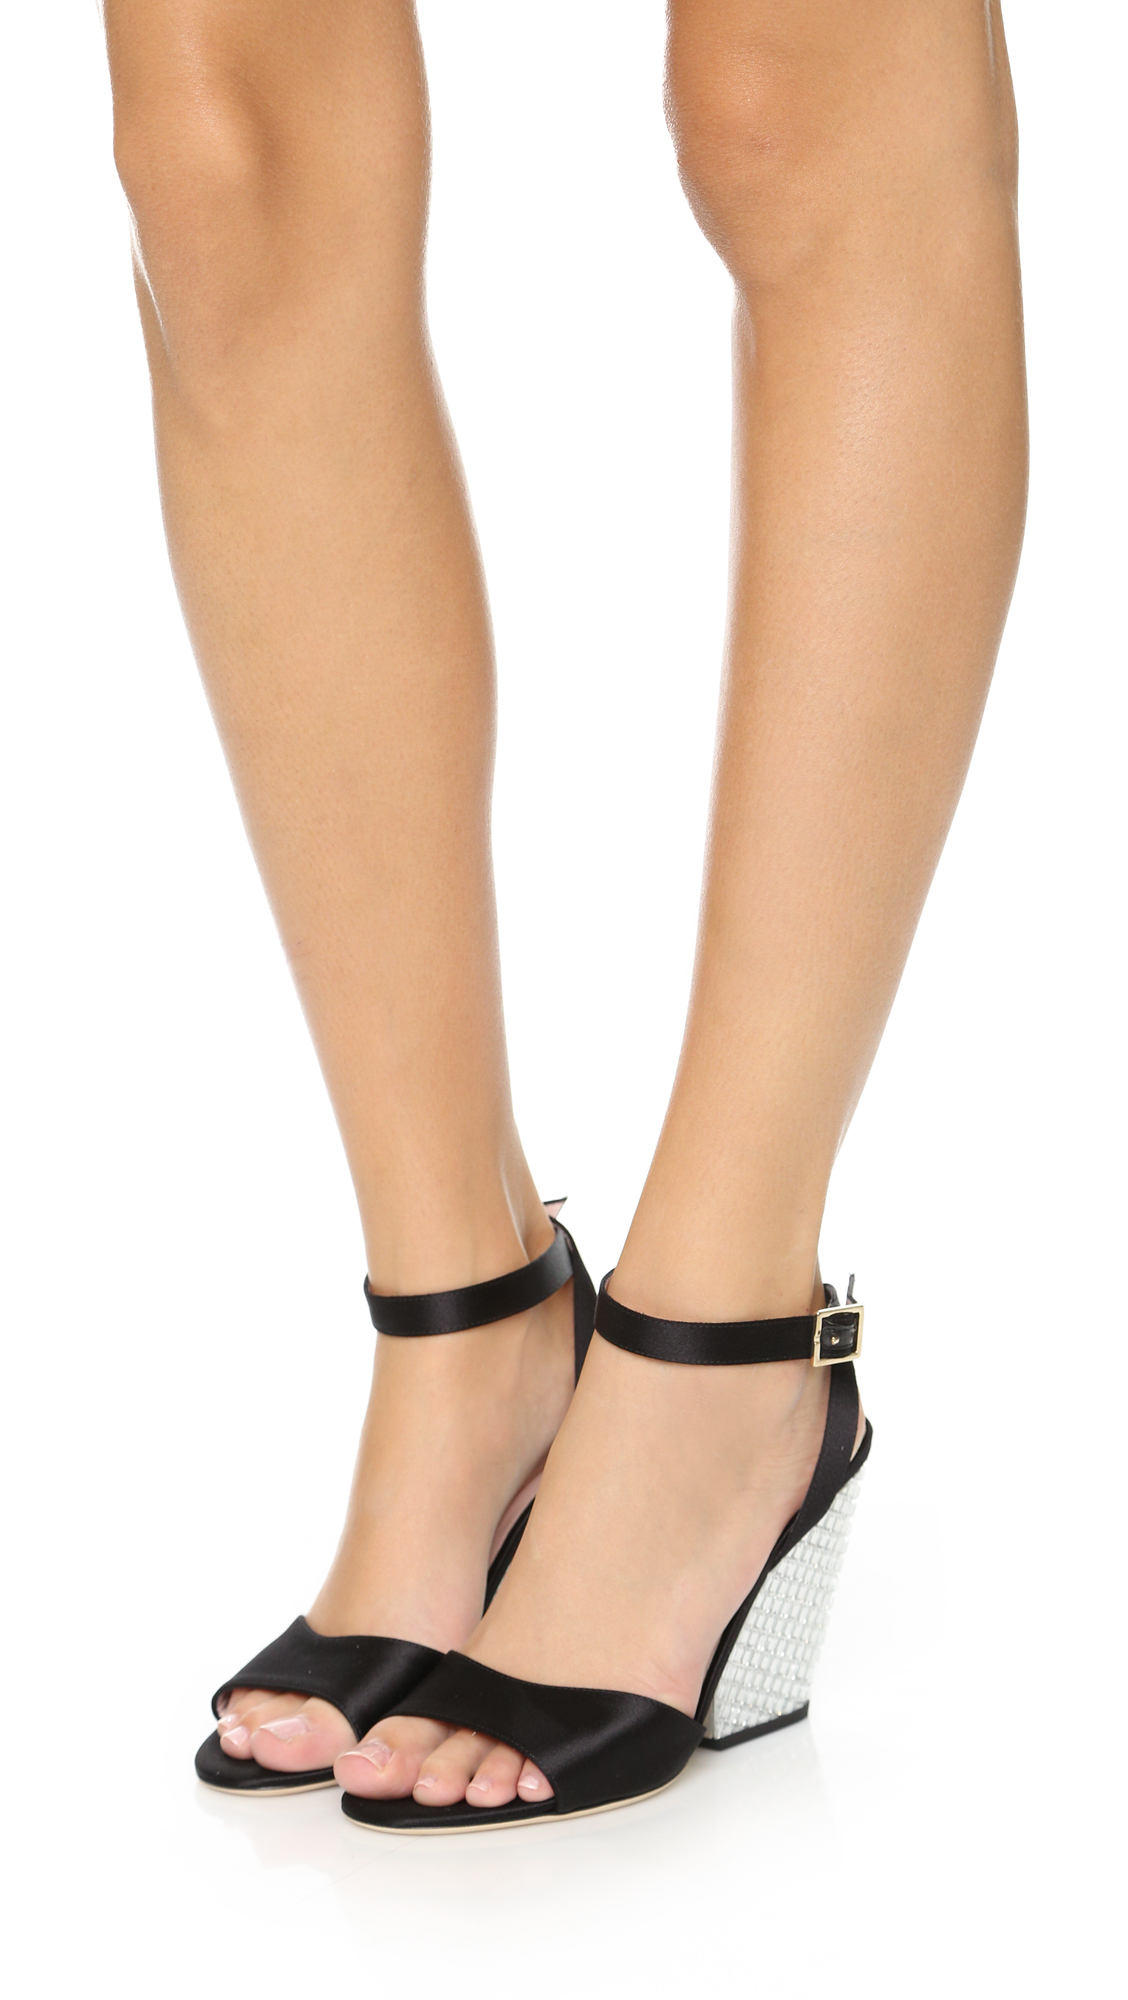 b0a1a04fd4f7 Kate Spade Isadora Wedges in Black - Lyst